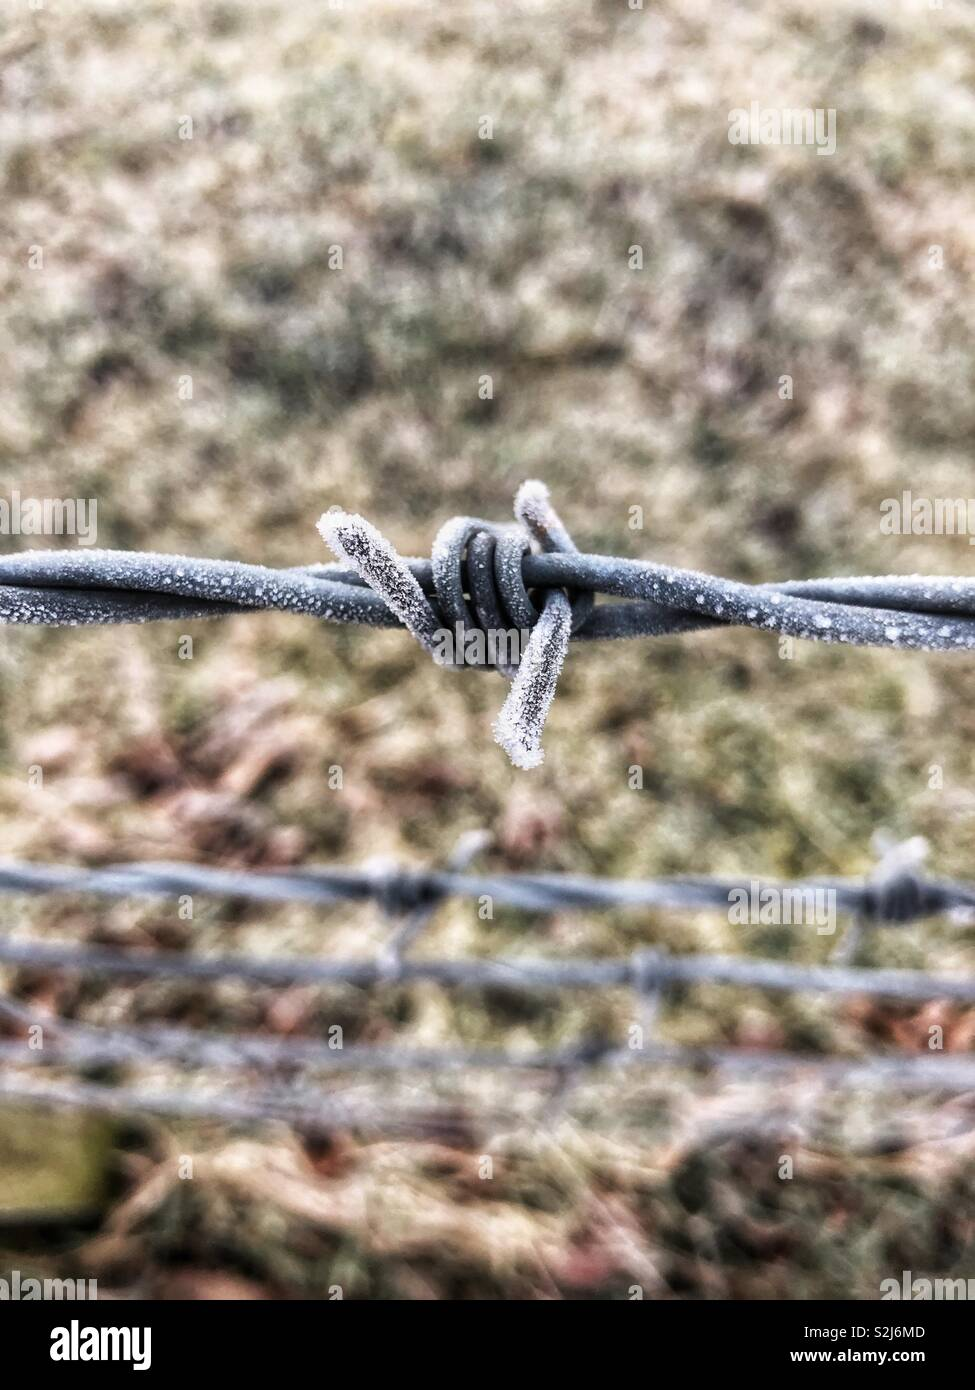 Frosted barb wire - Stock Image